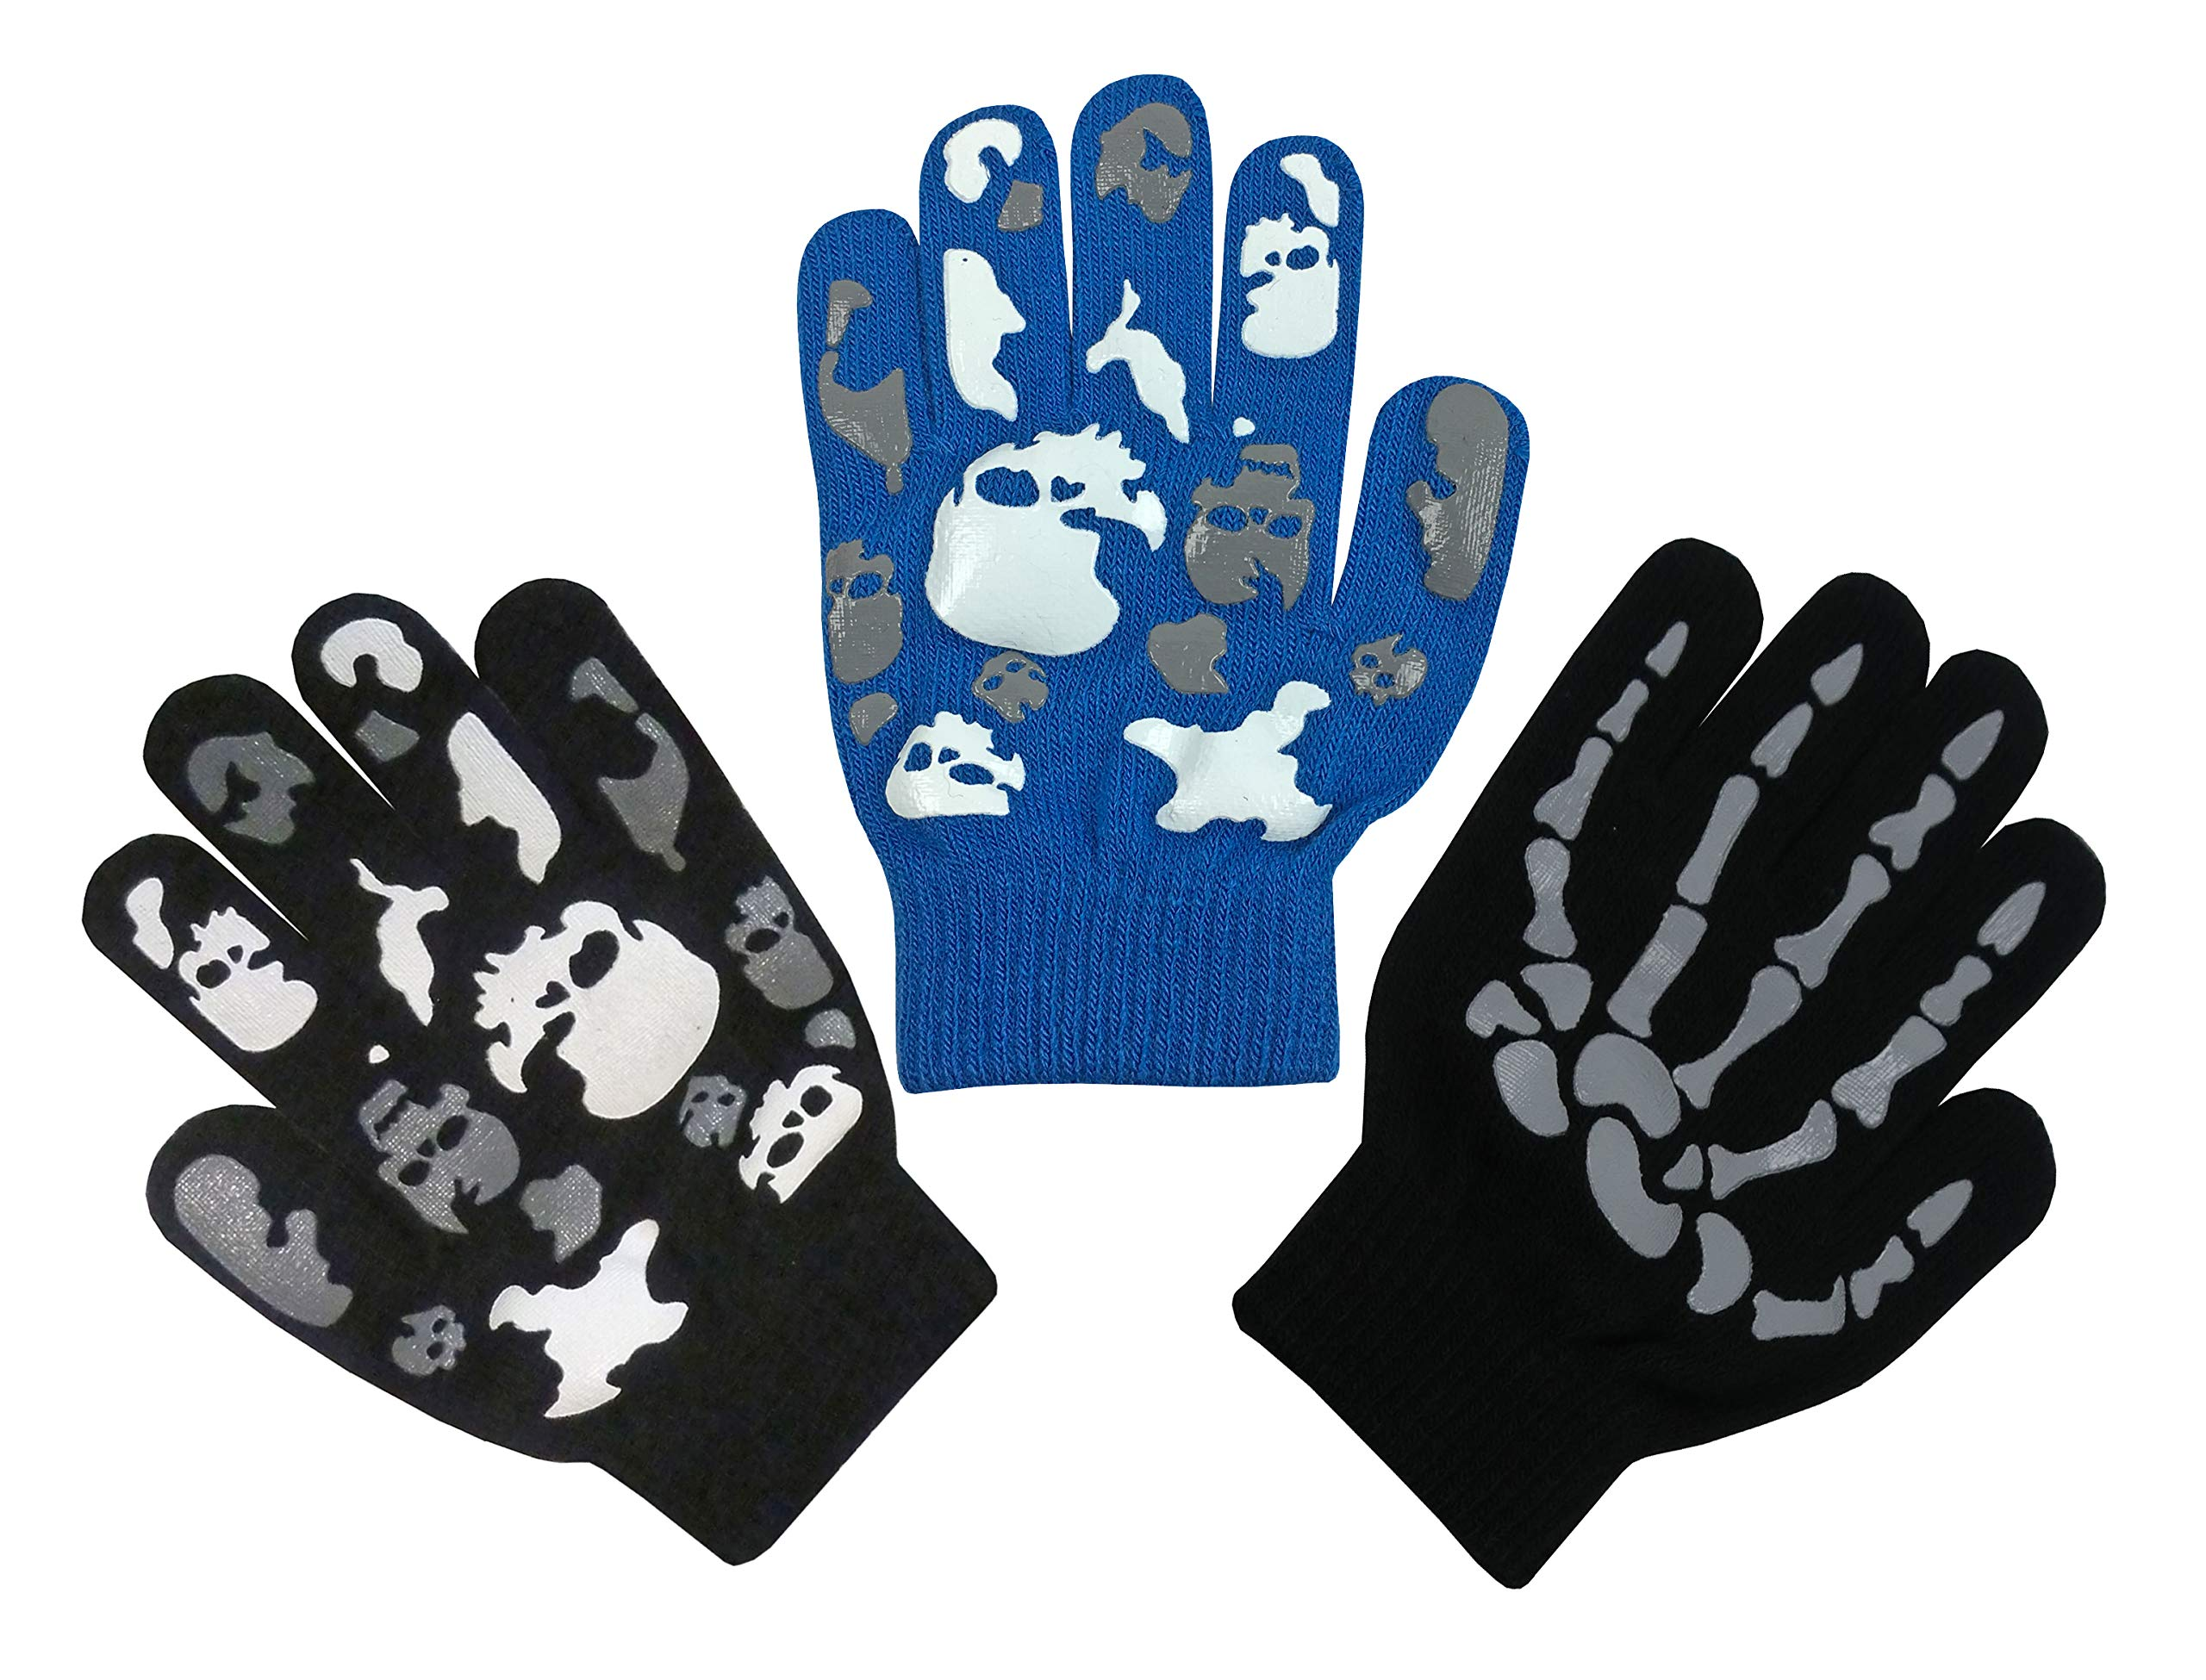 Open-Minded Thickening Baby Mittens Warm Winter Baby Gloves Boys Girls Children Mittens Snowboard Gloves Kids Winter Mittens Matching In Colour Accessories